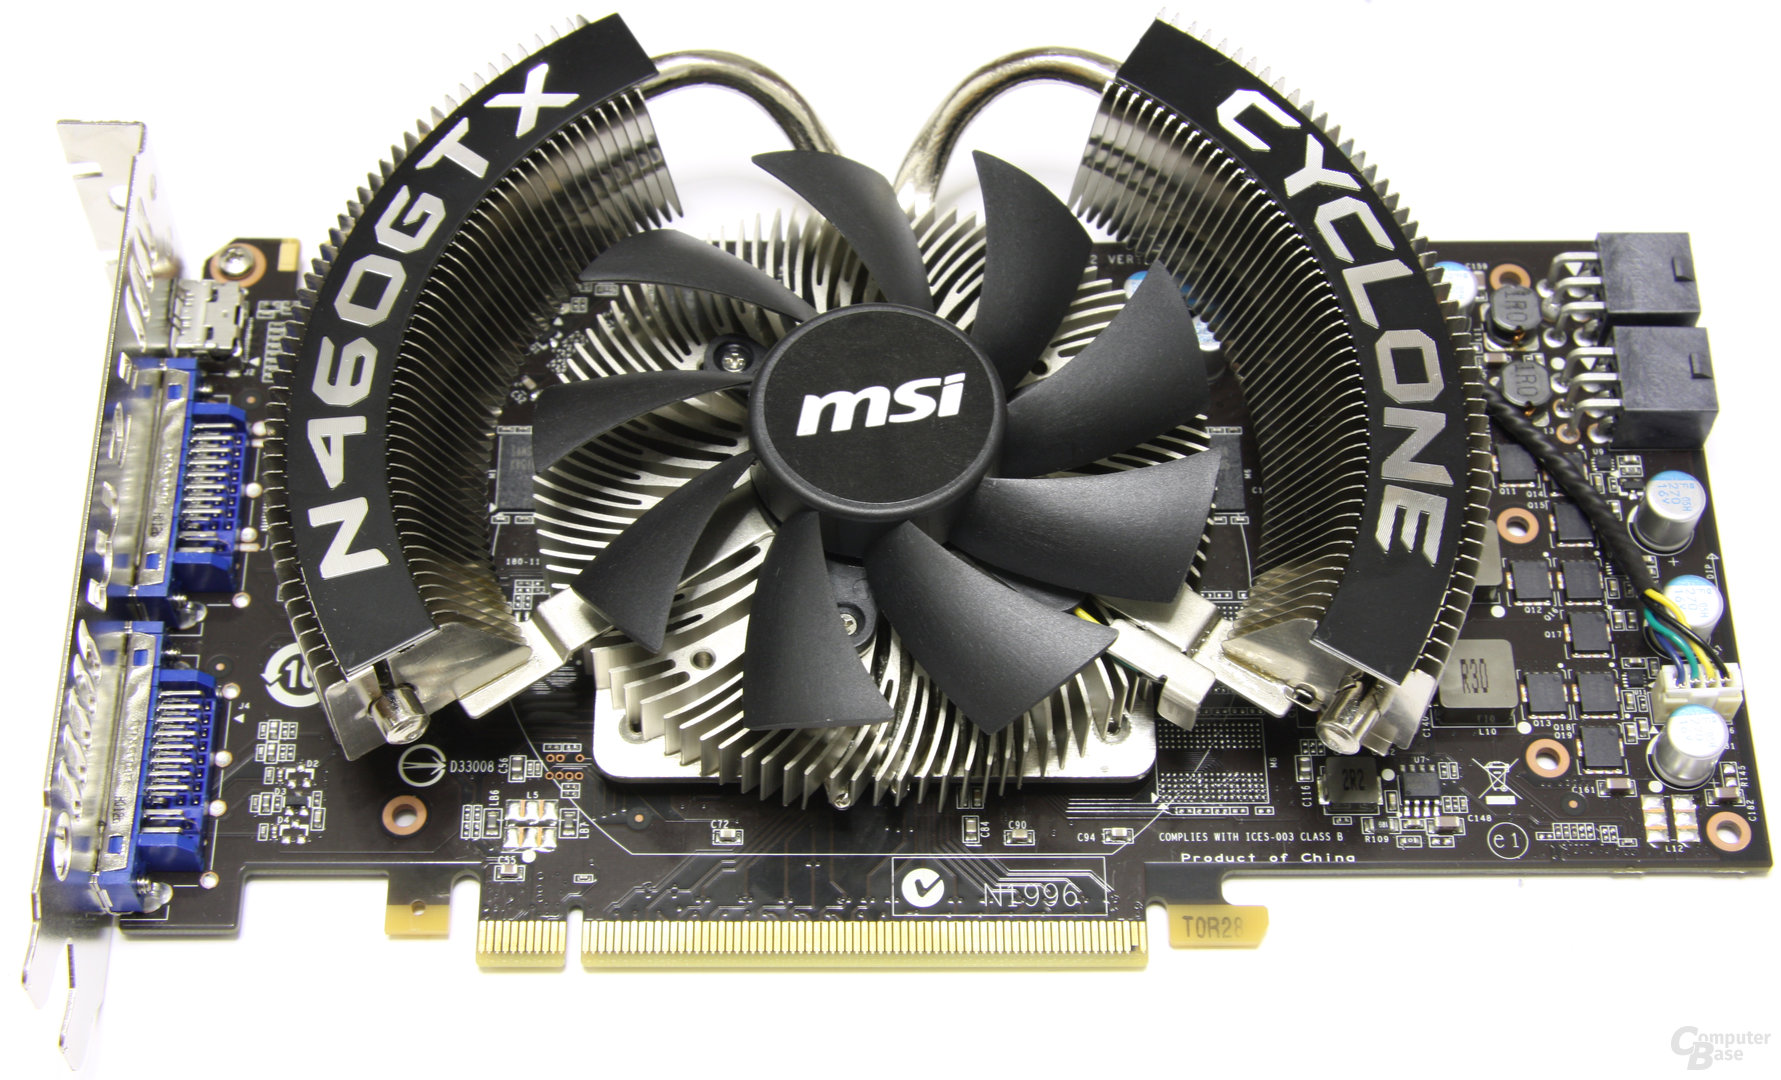 MSI GeForce GTX 460 Cyclone